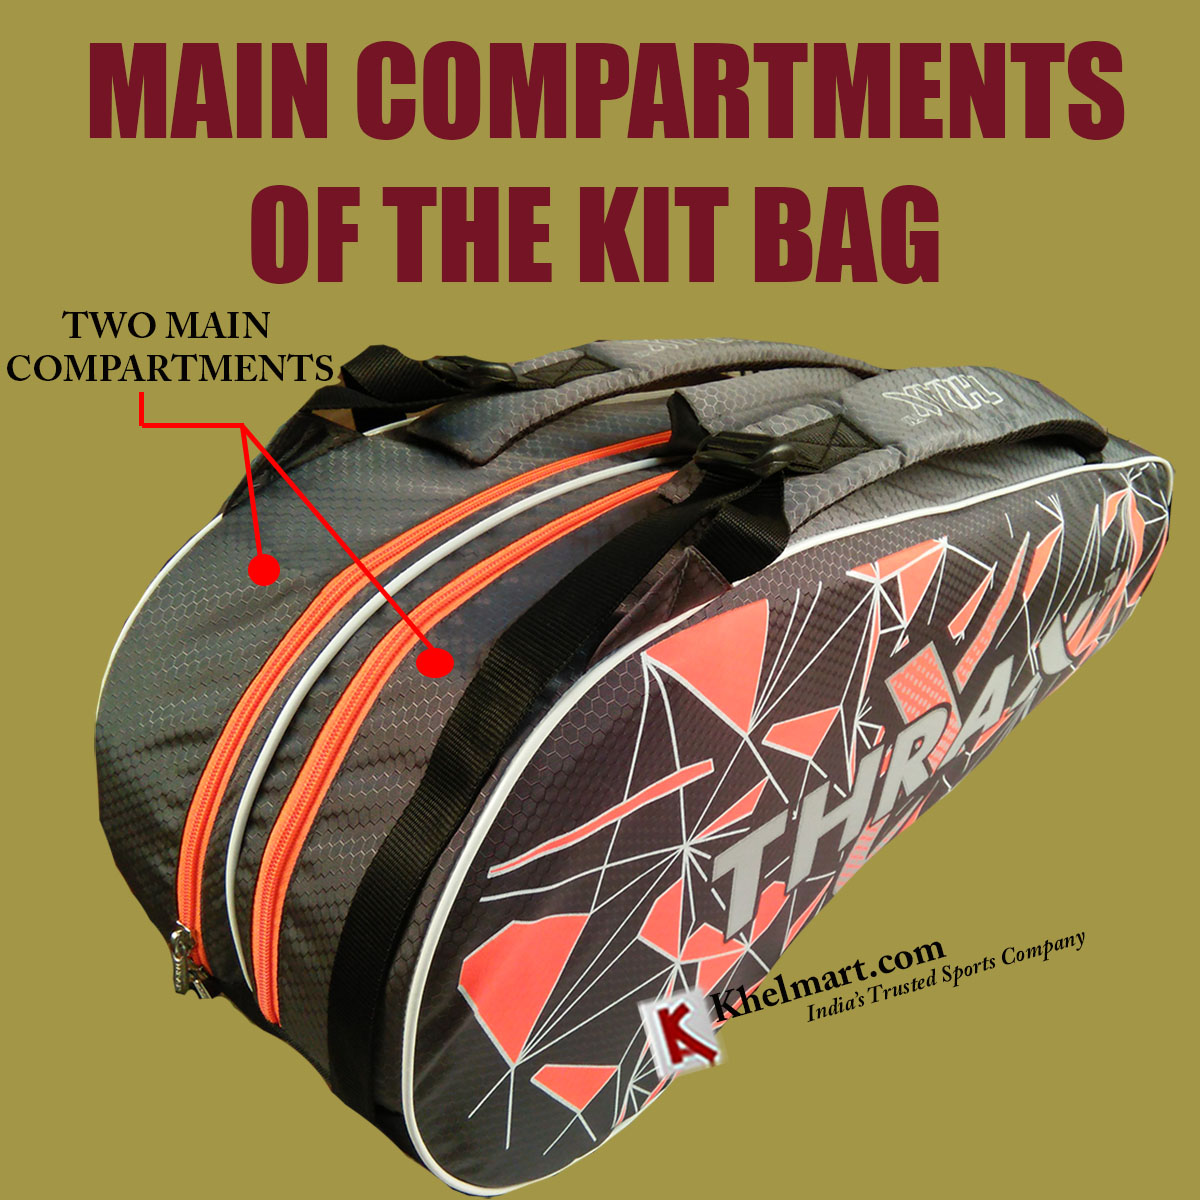 MAIN_COMPARTMENTS_OF_THE_KIT_BAG.jpg